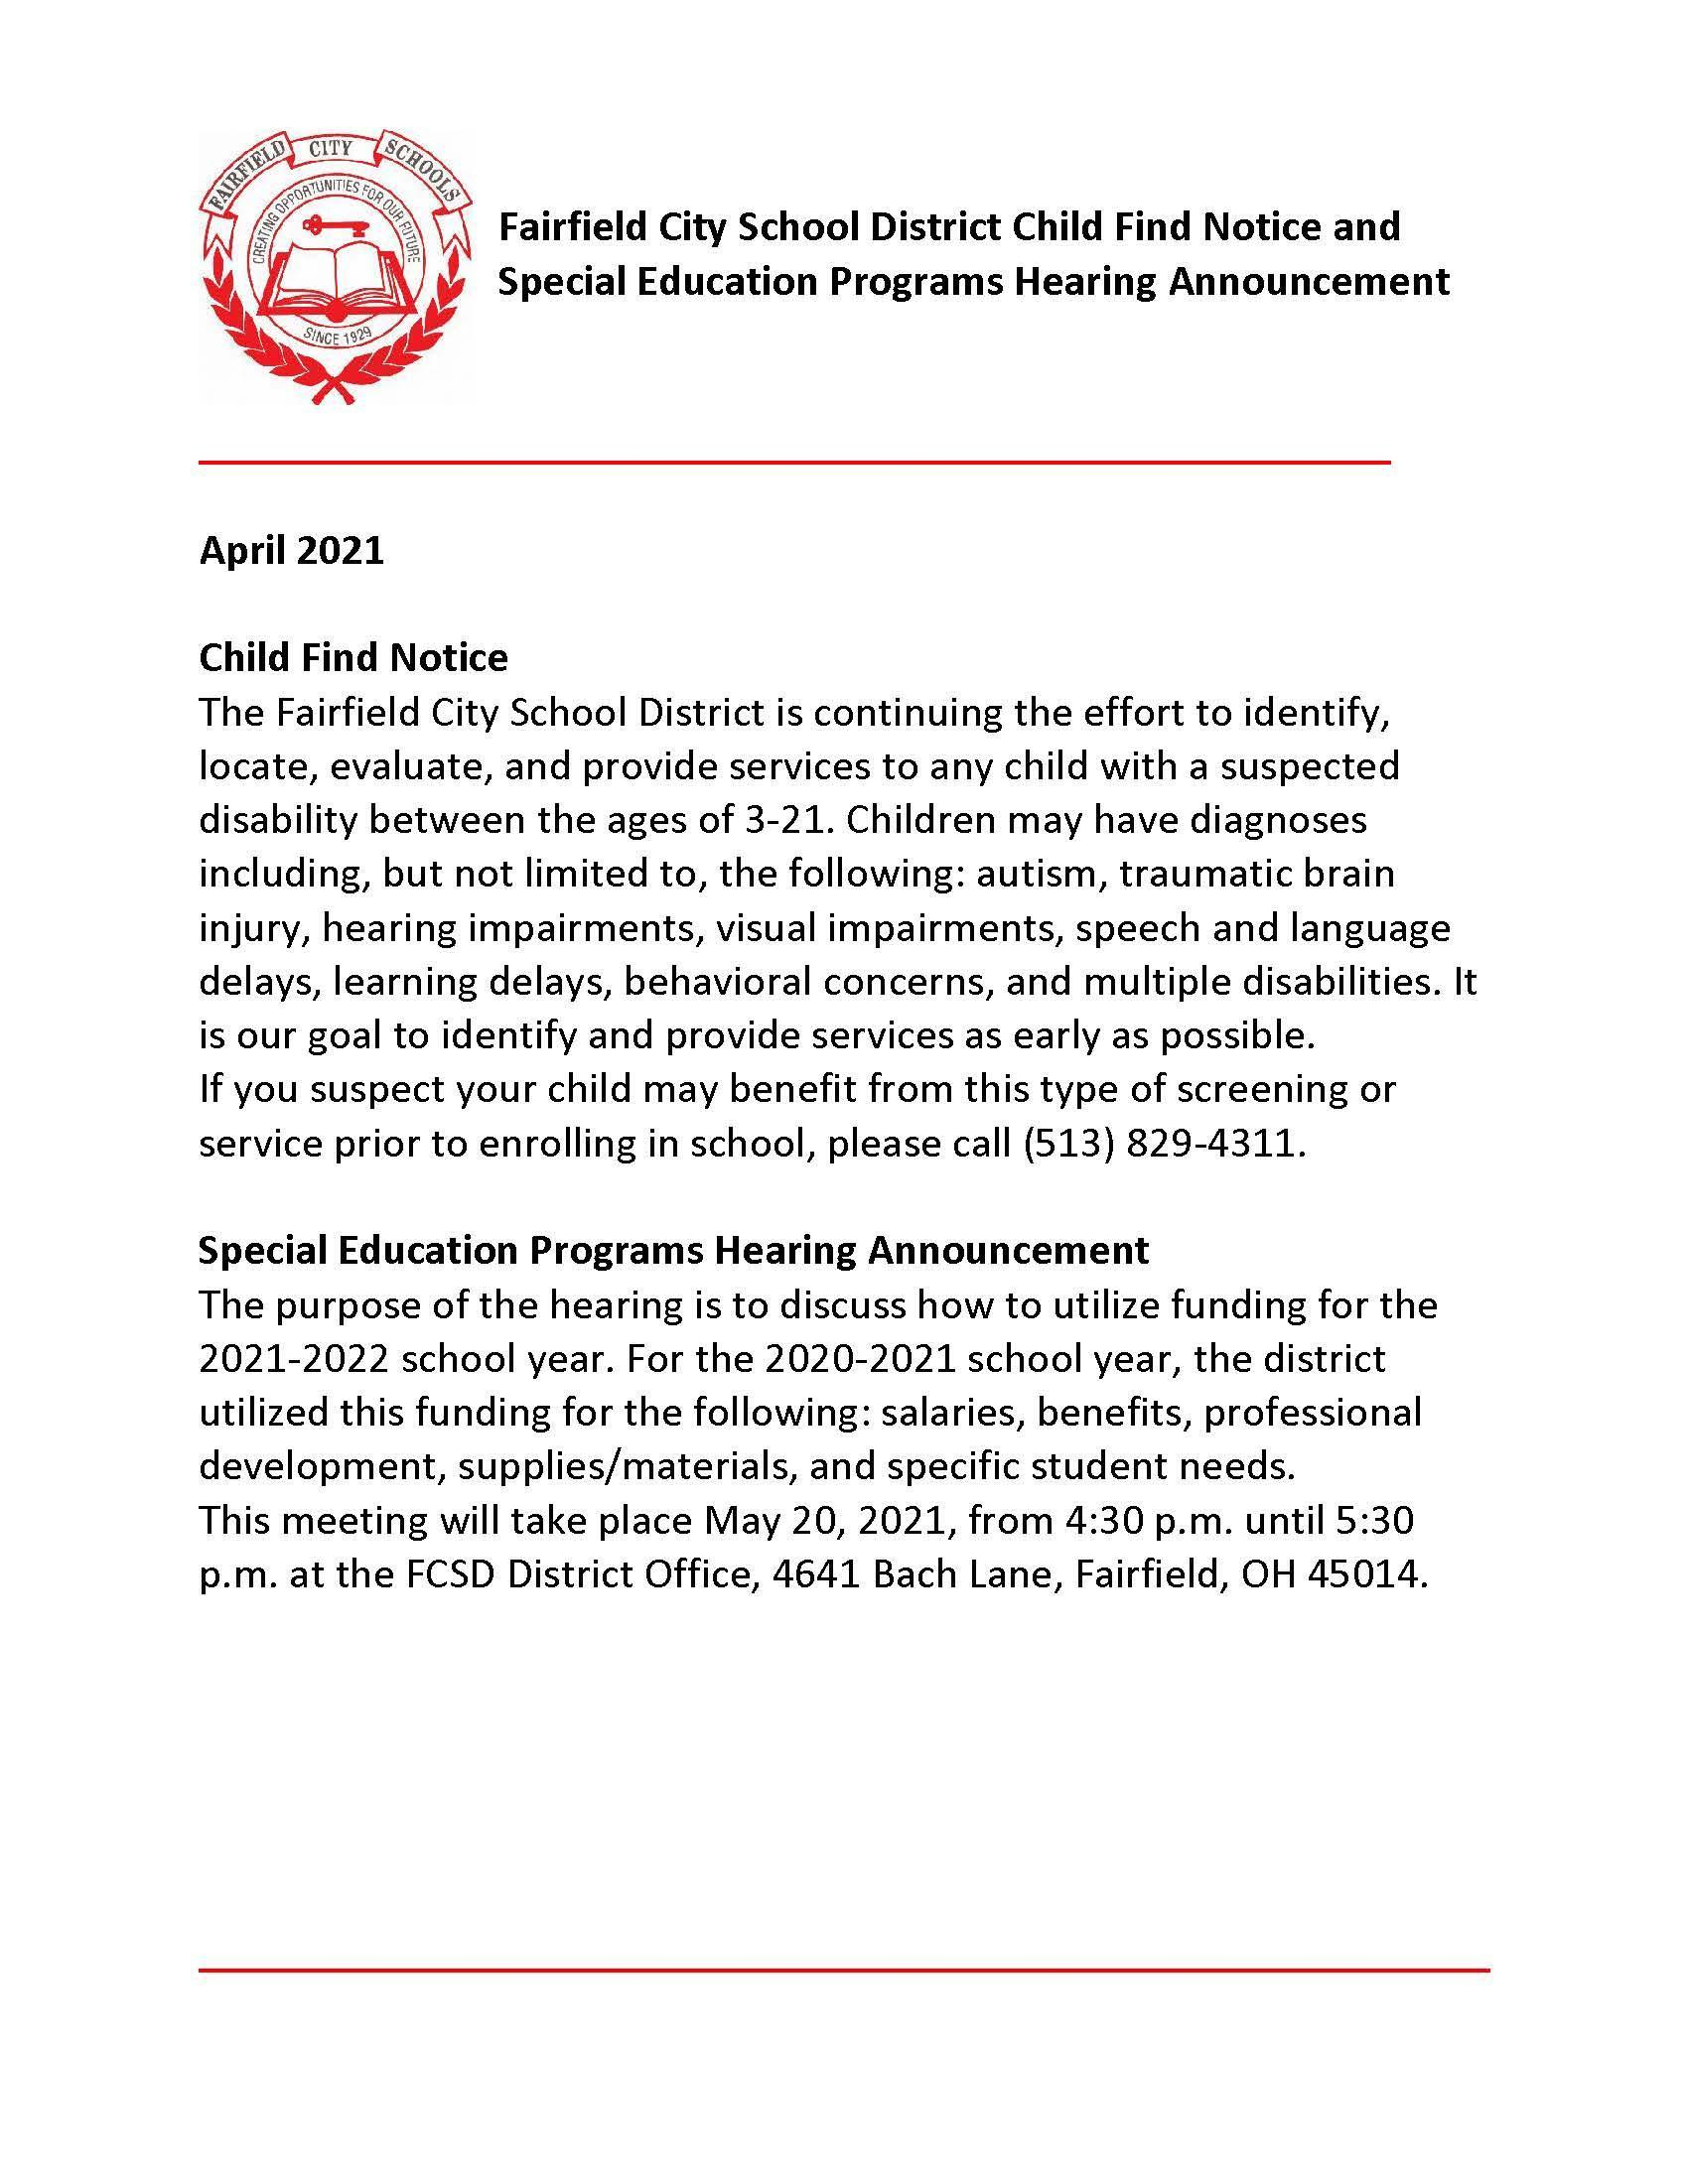 Special Education Services Child Find Notice and notice of a hearding regarding special programs on May 20 from 4:30-5:30 pm.